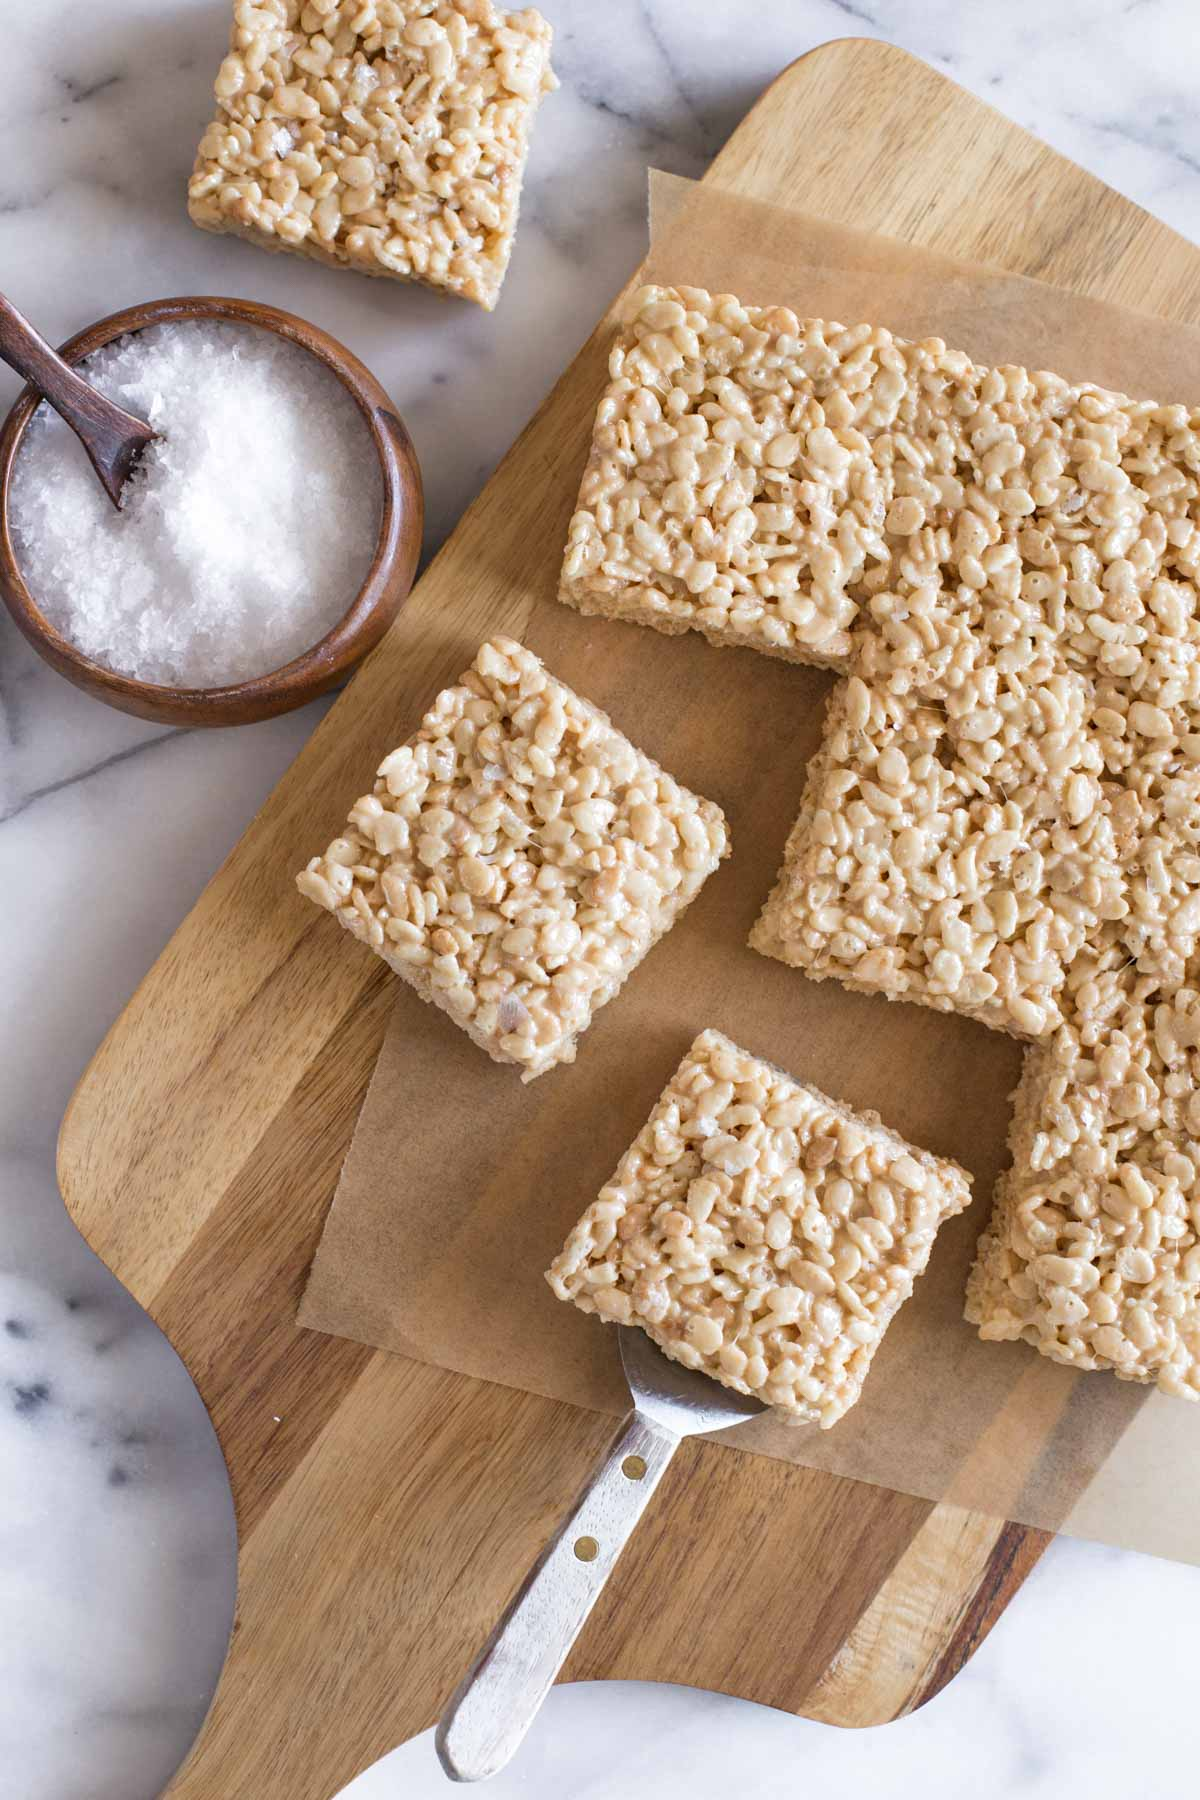 Overhead view of Salted Caramel Rice Krispie Treats on a wooden cutting board.